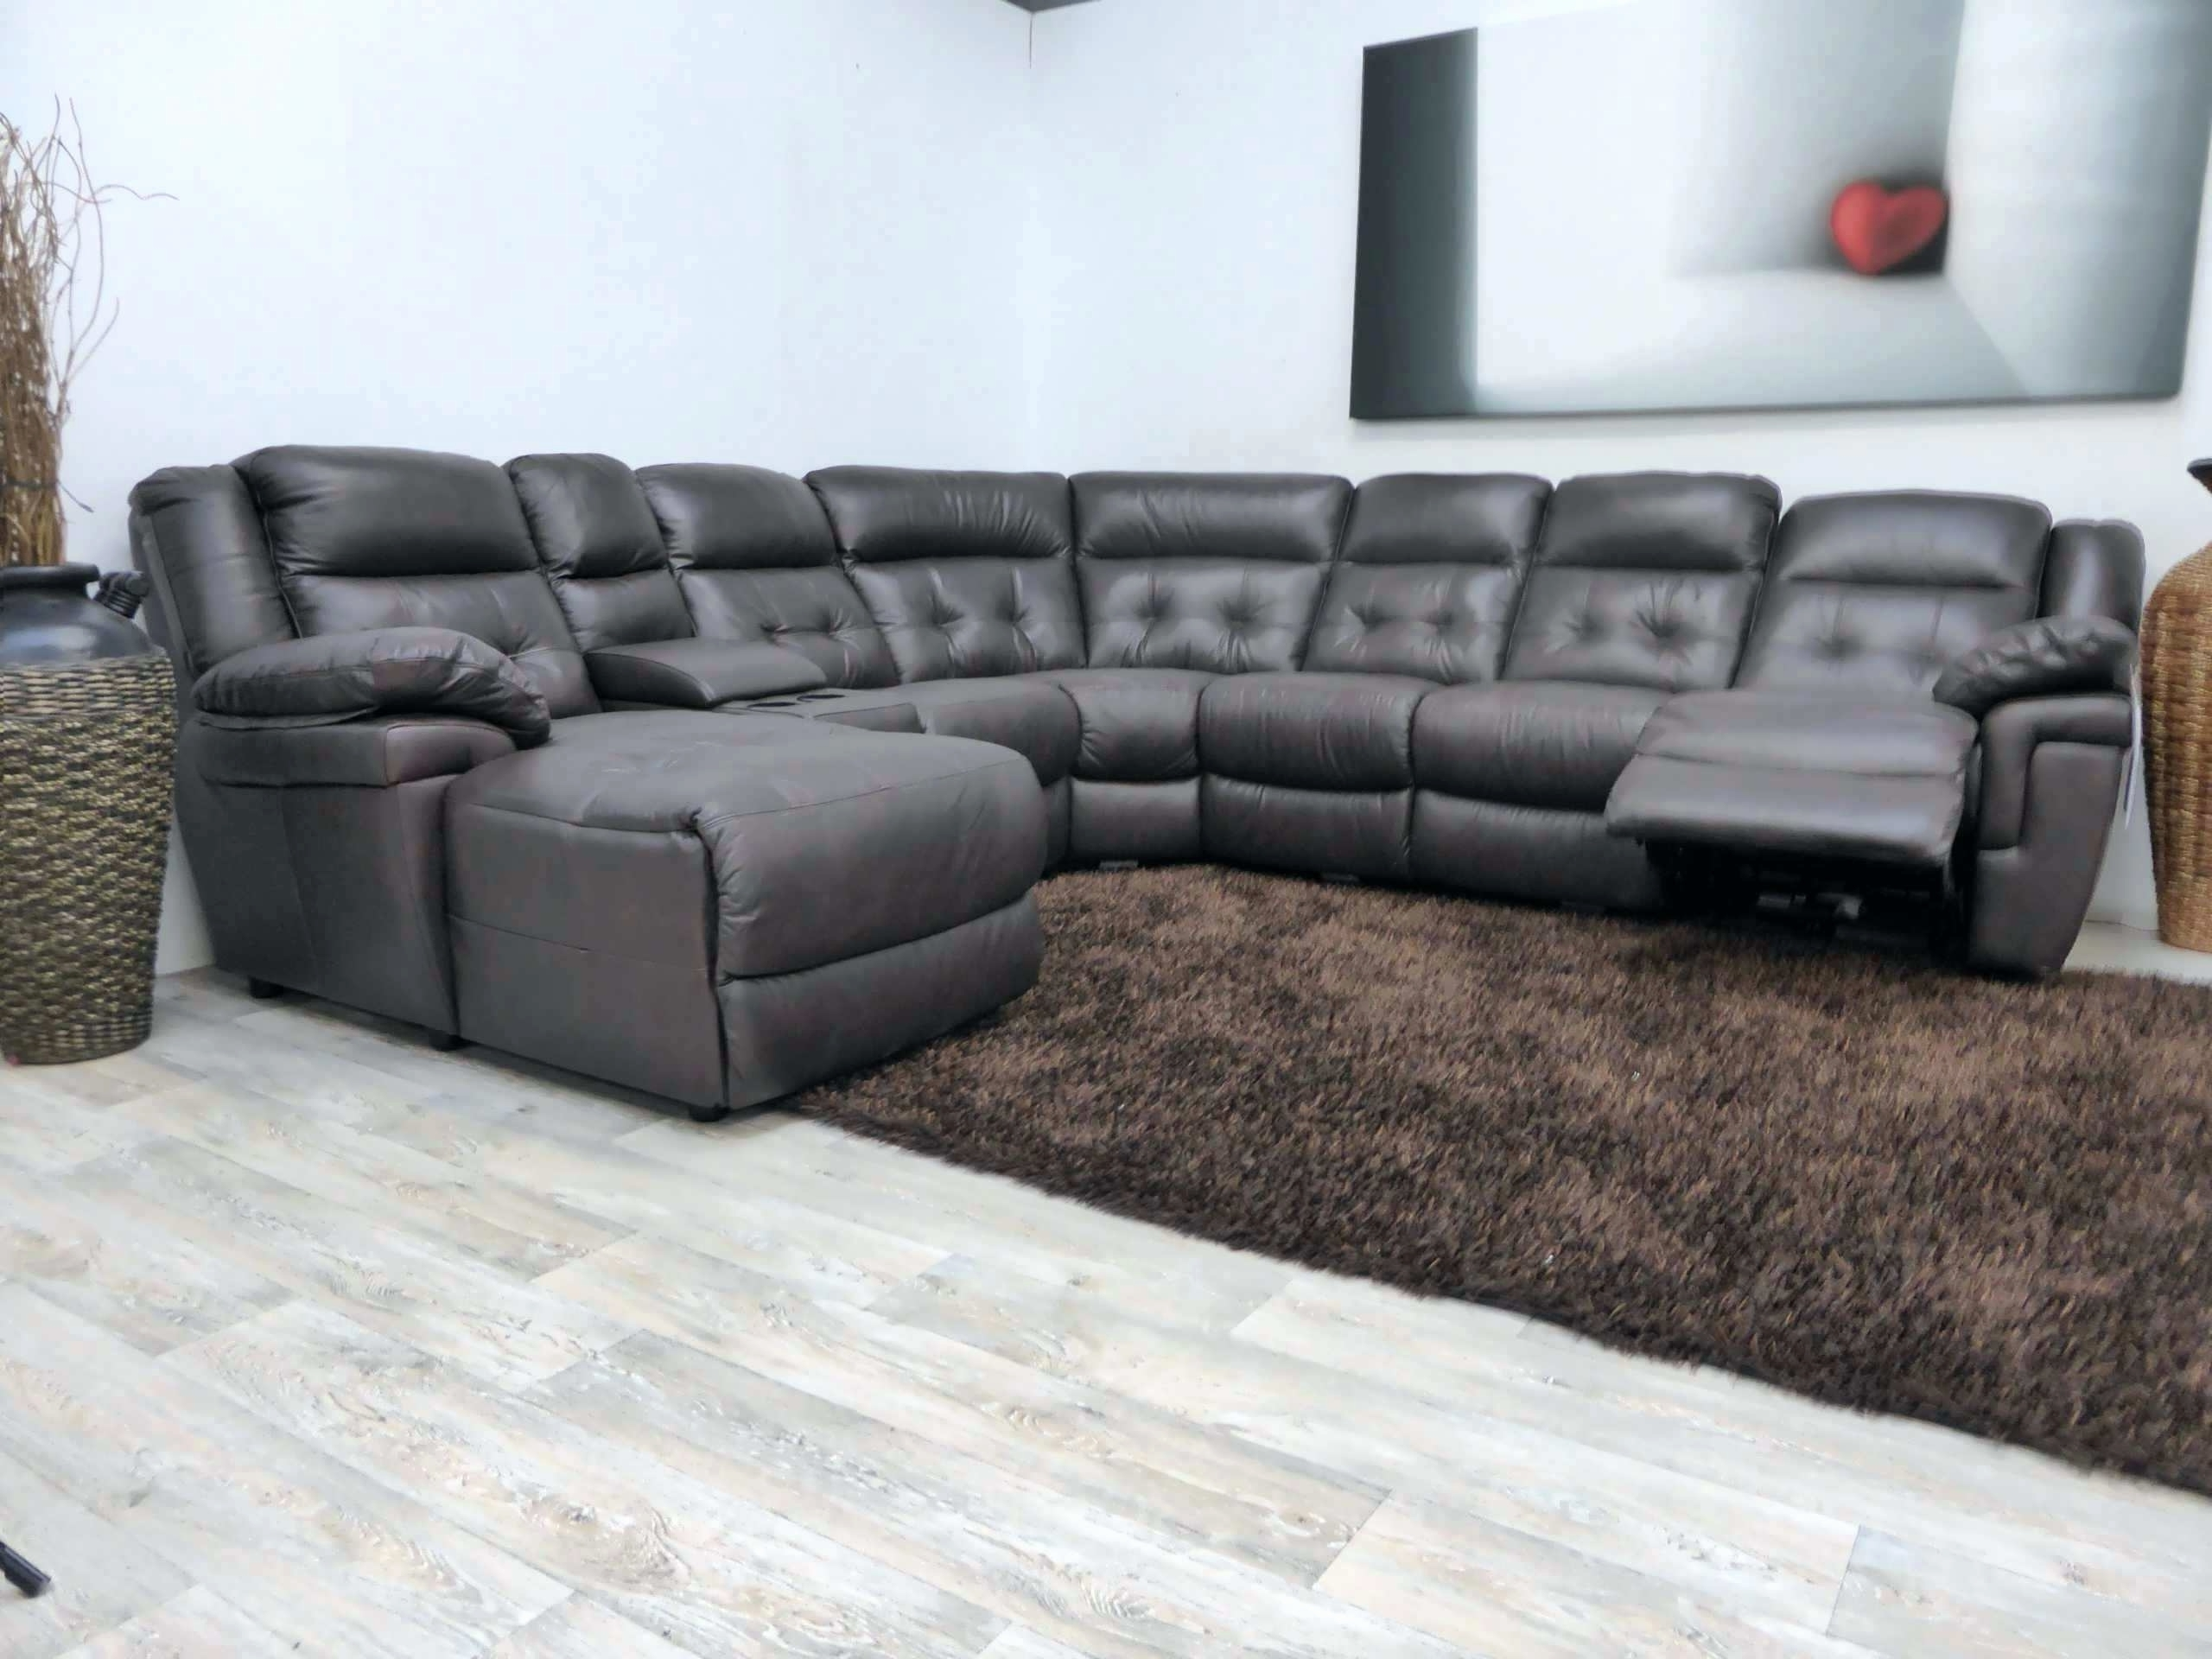 Small Chaise Sofas Intended For Famous Unique Apartment Size Leather Sectional Sofa With Chaise  (View 4 of 15)